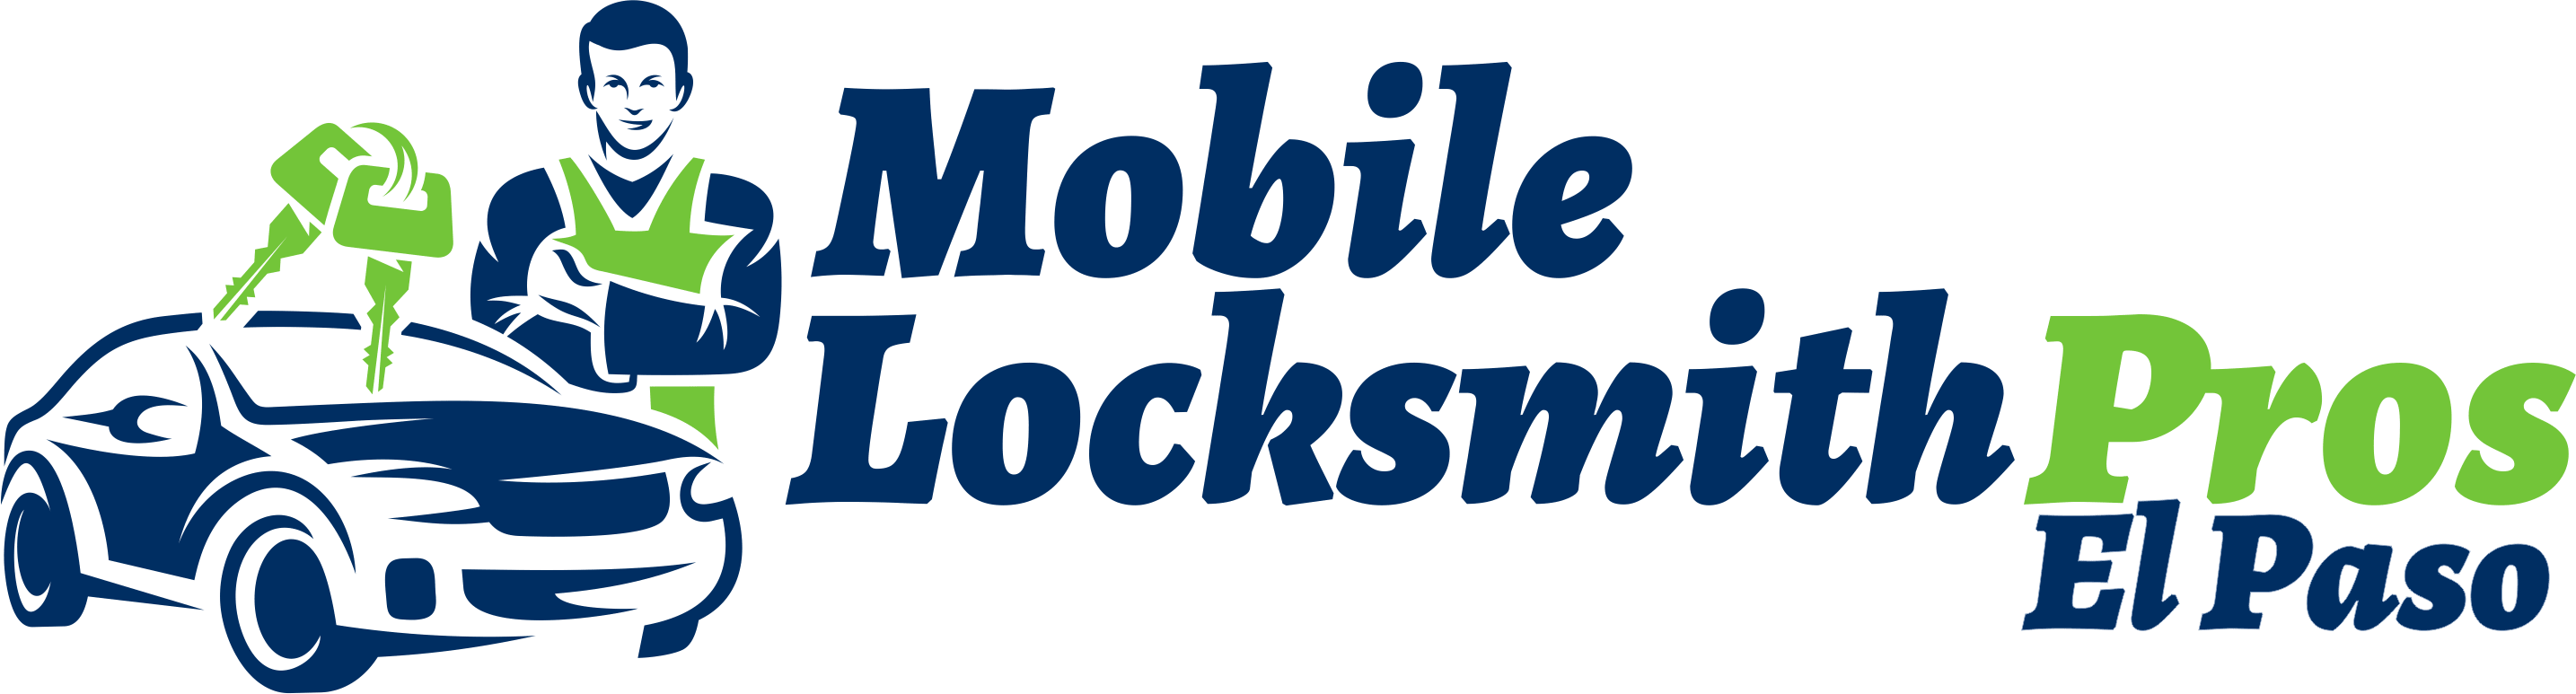 Mobile Locksmith Pros El Paso Texas